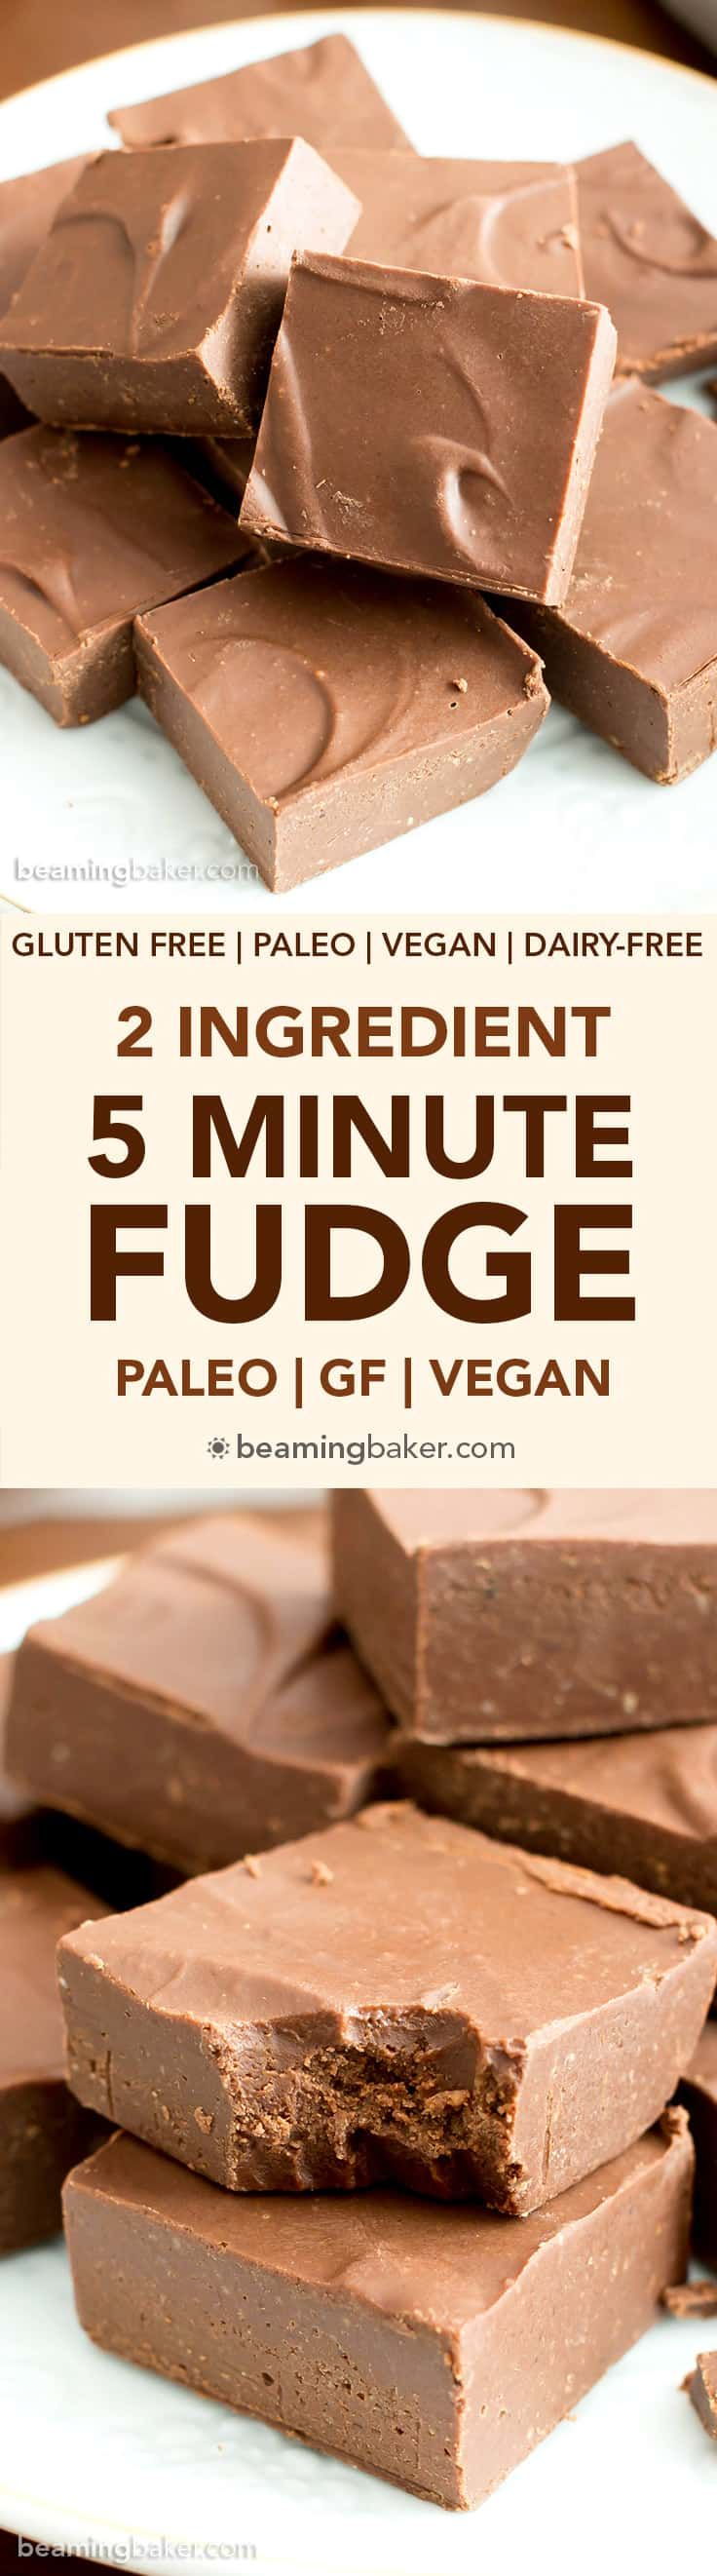 2 Ingredient 5 Minute Homemade Fudge Recipe (V, GF): a quick 'n easy recipe for rich, decadent chocolate fudge that's stable at room temperature! #Paleo #Vegan #GlutenFree #DairyFree #Dessert | Recipe on BeamingBaker.com